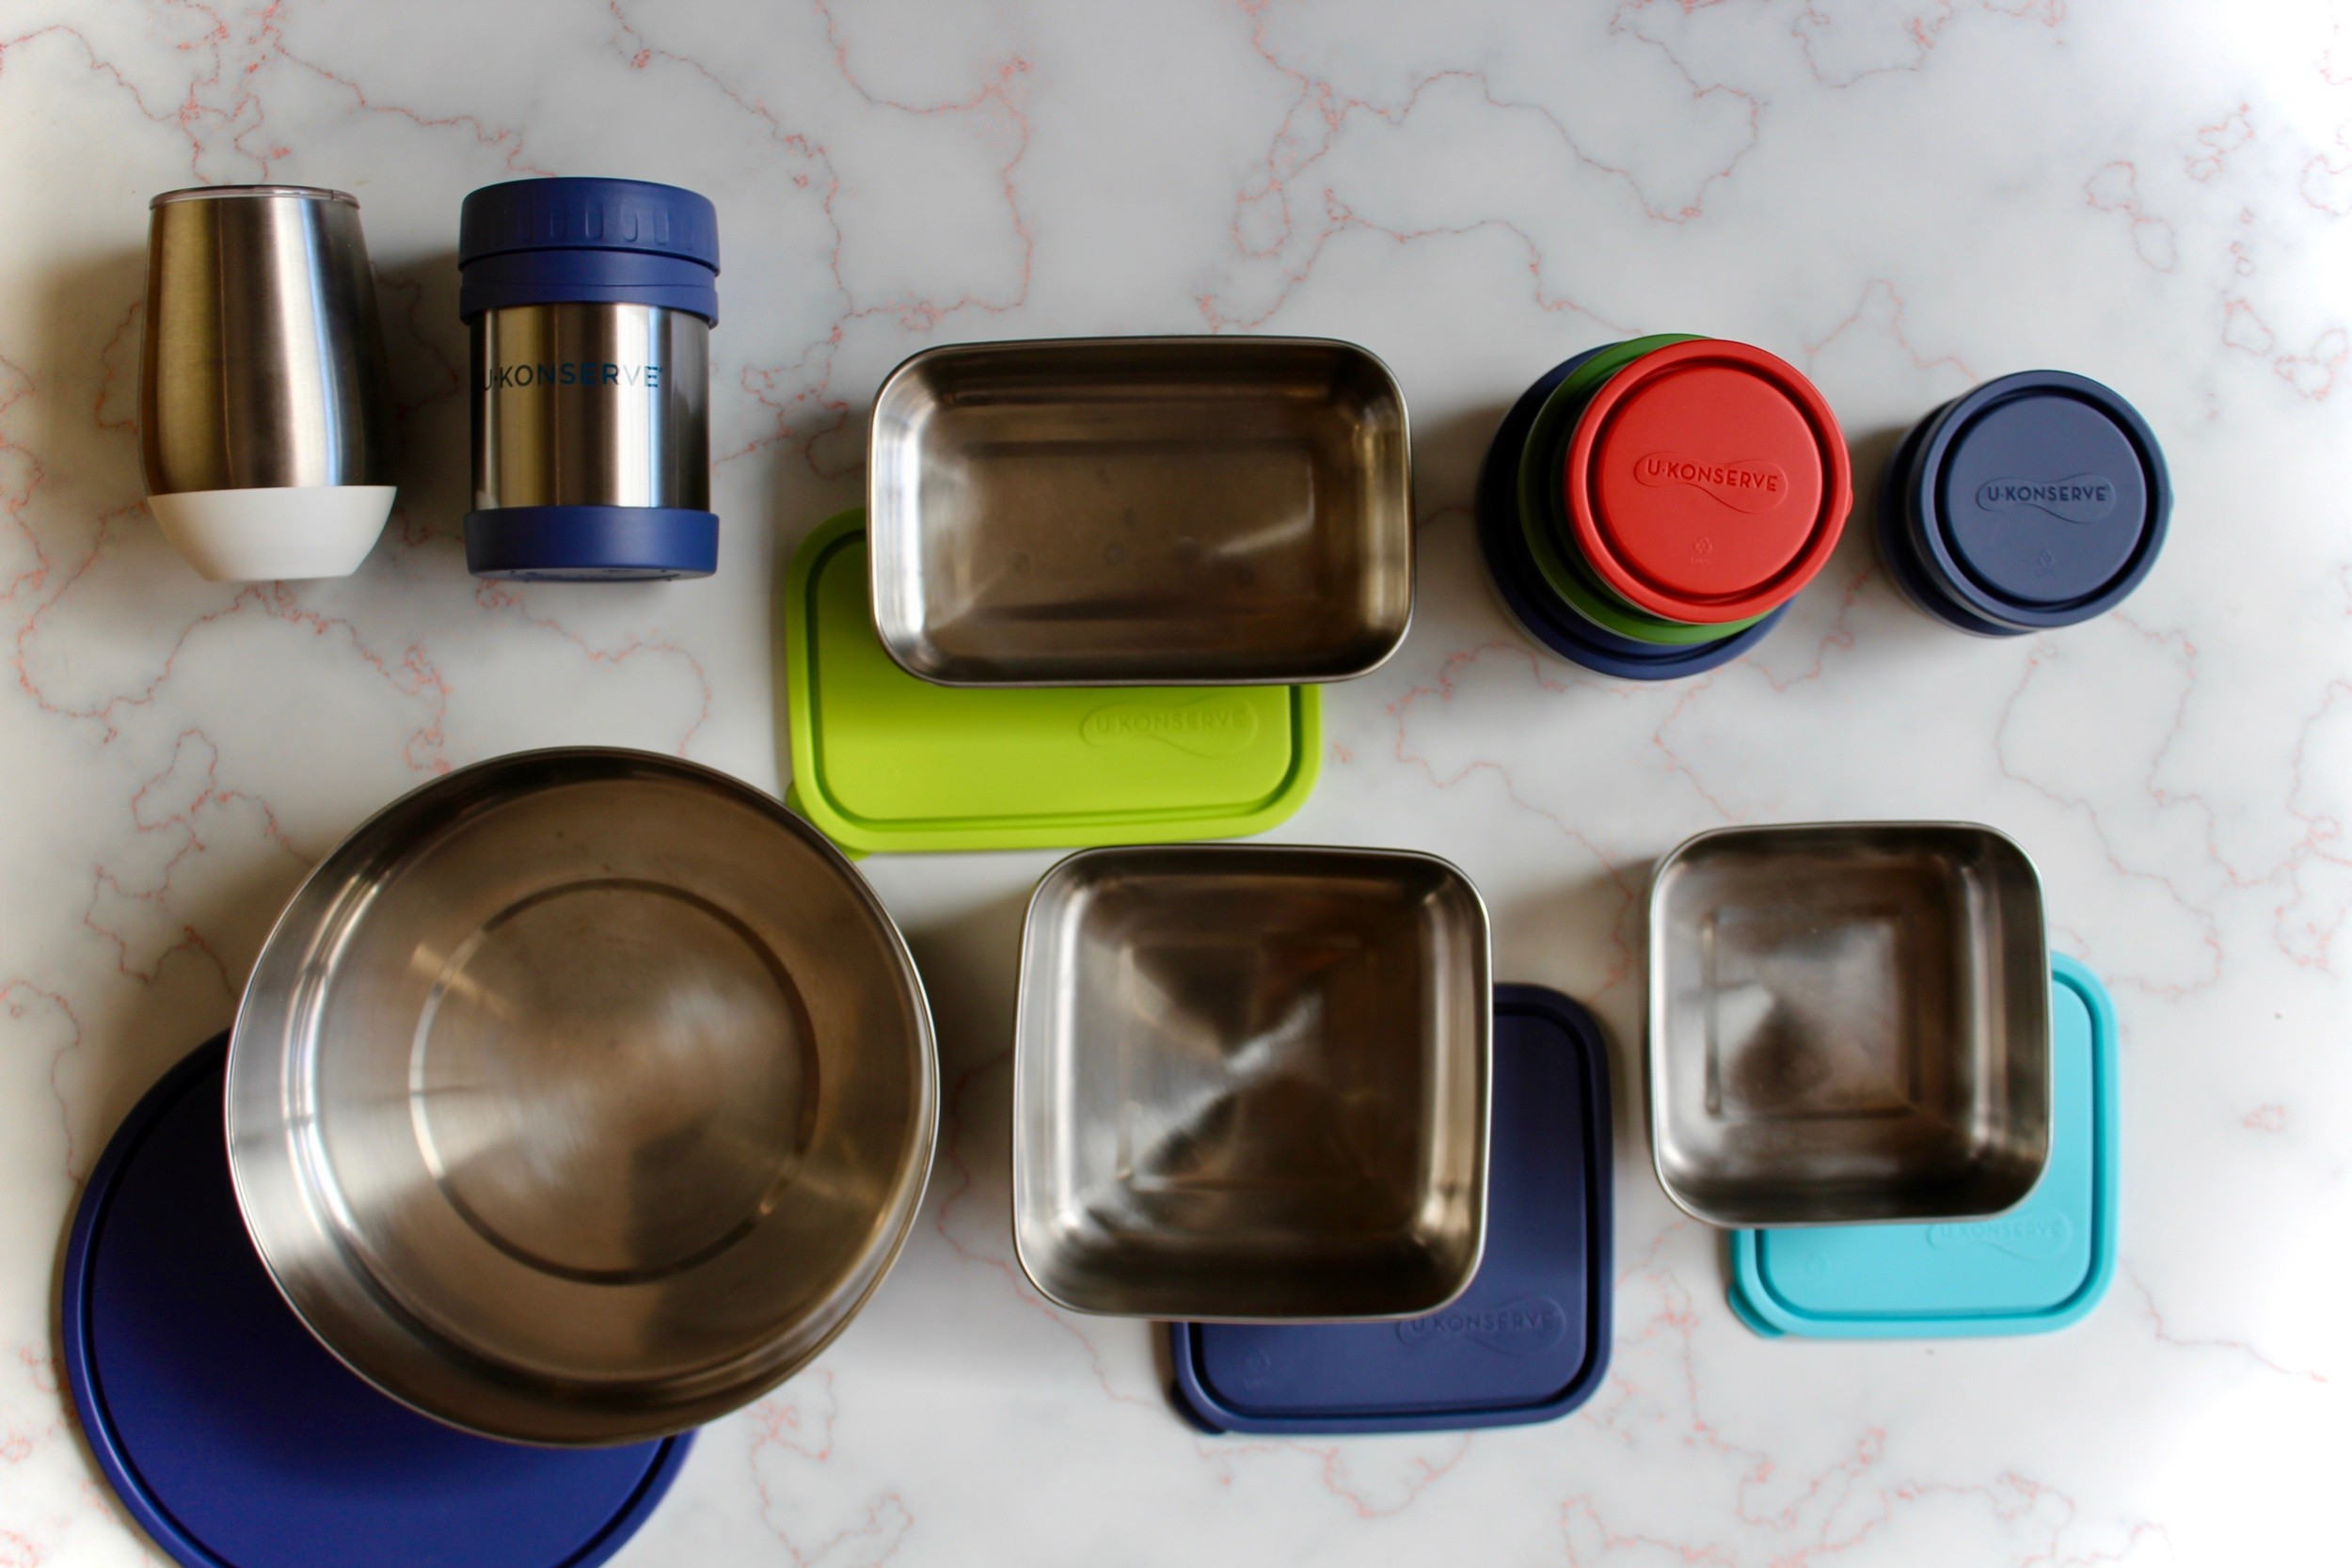 Ukonserve-Stainless-Steel-food-containers-Just-a-Mamma-Blog- 6967